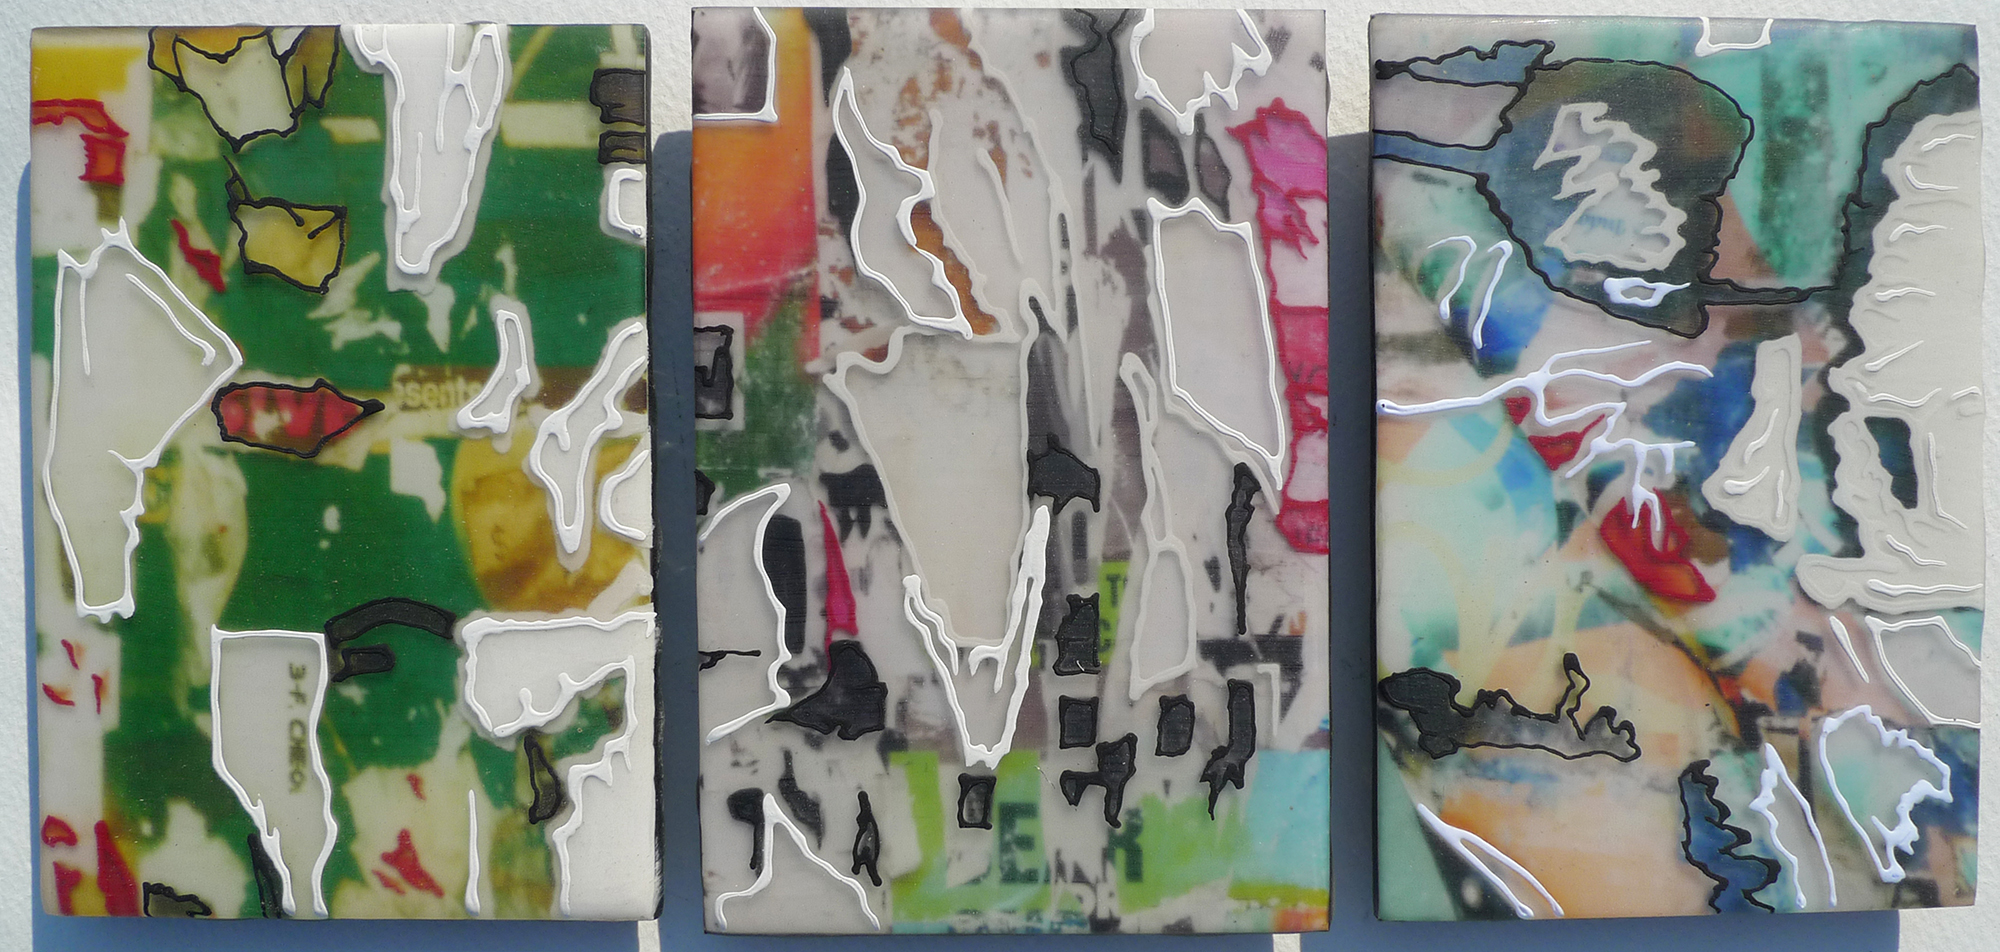 Untitled (Small Shred Triptych)